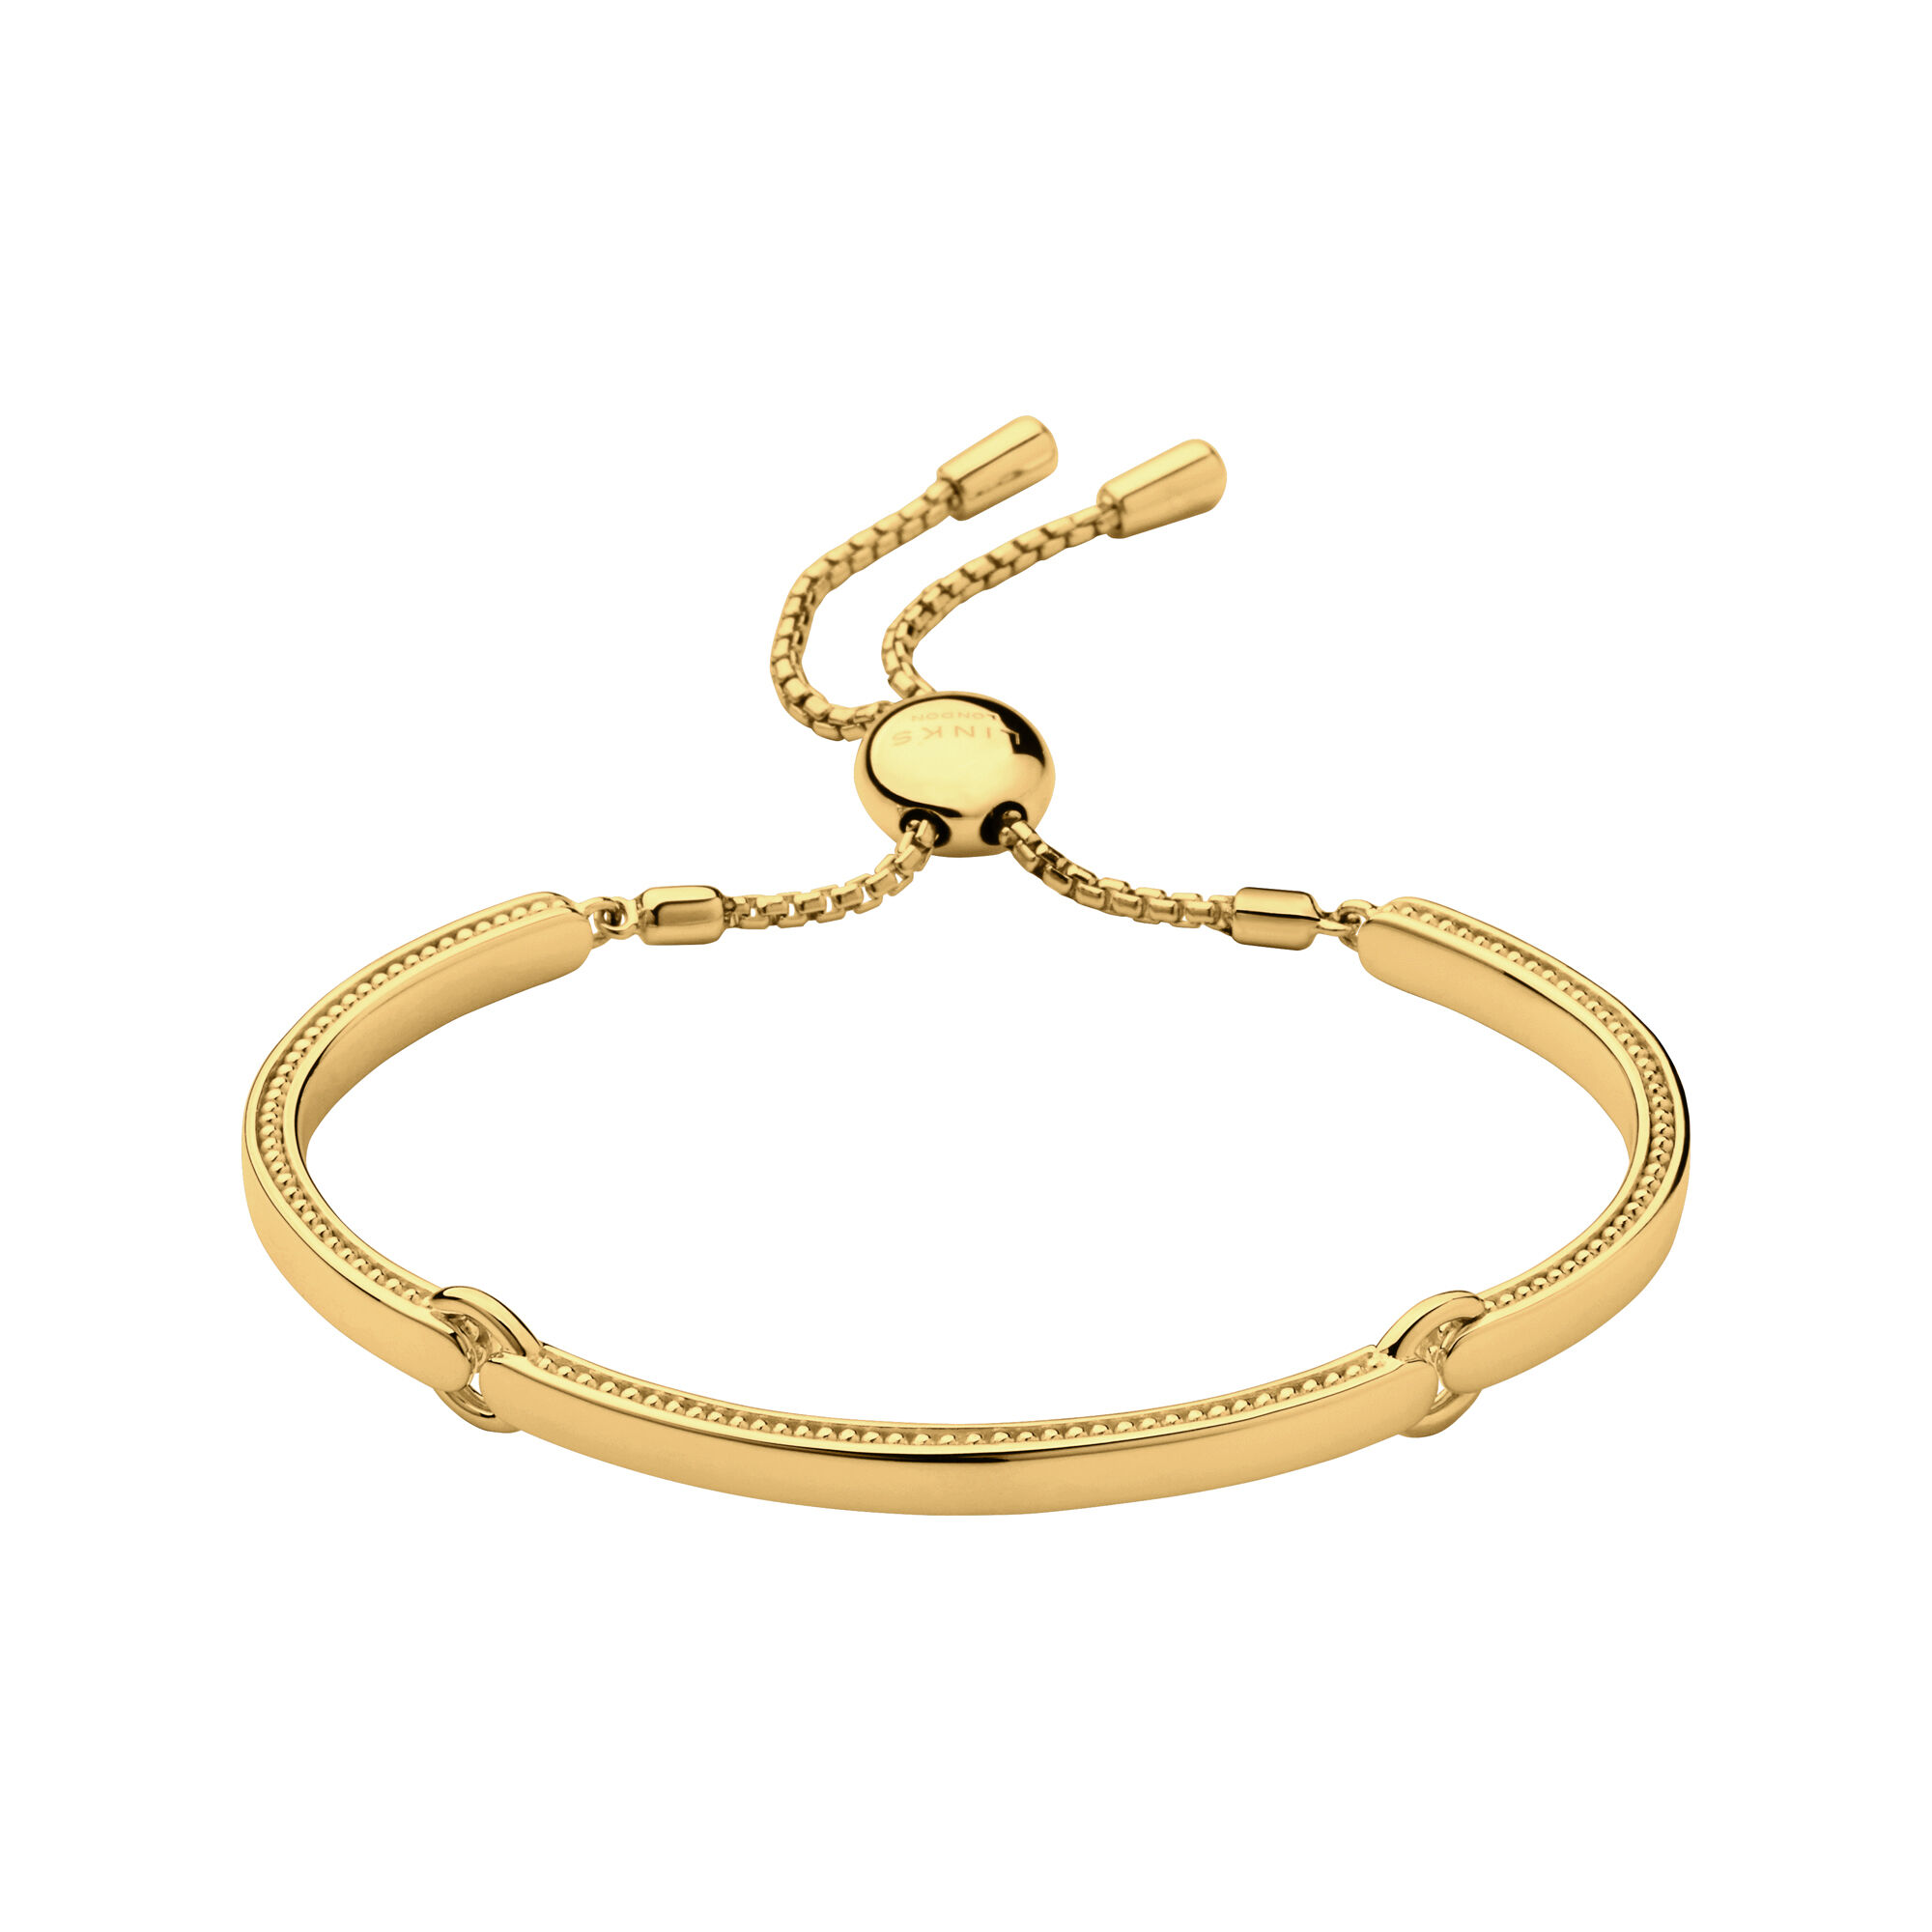 bangles cartier bangle bracelet en circles clou jewelry us the collections high on juste scale with categories fine gold official bracelets un